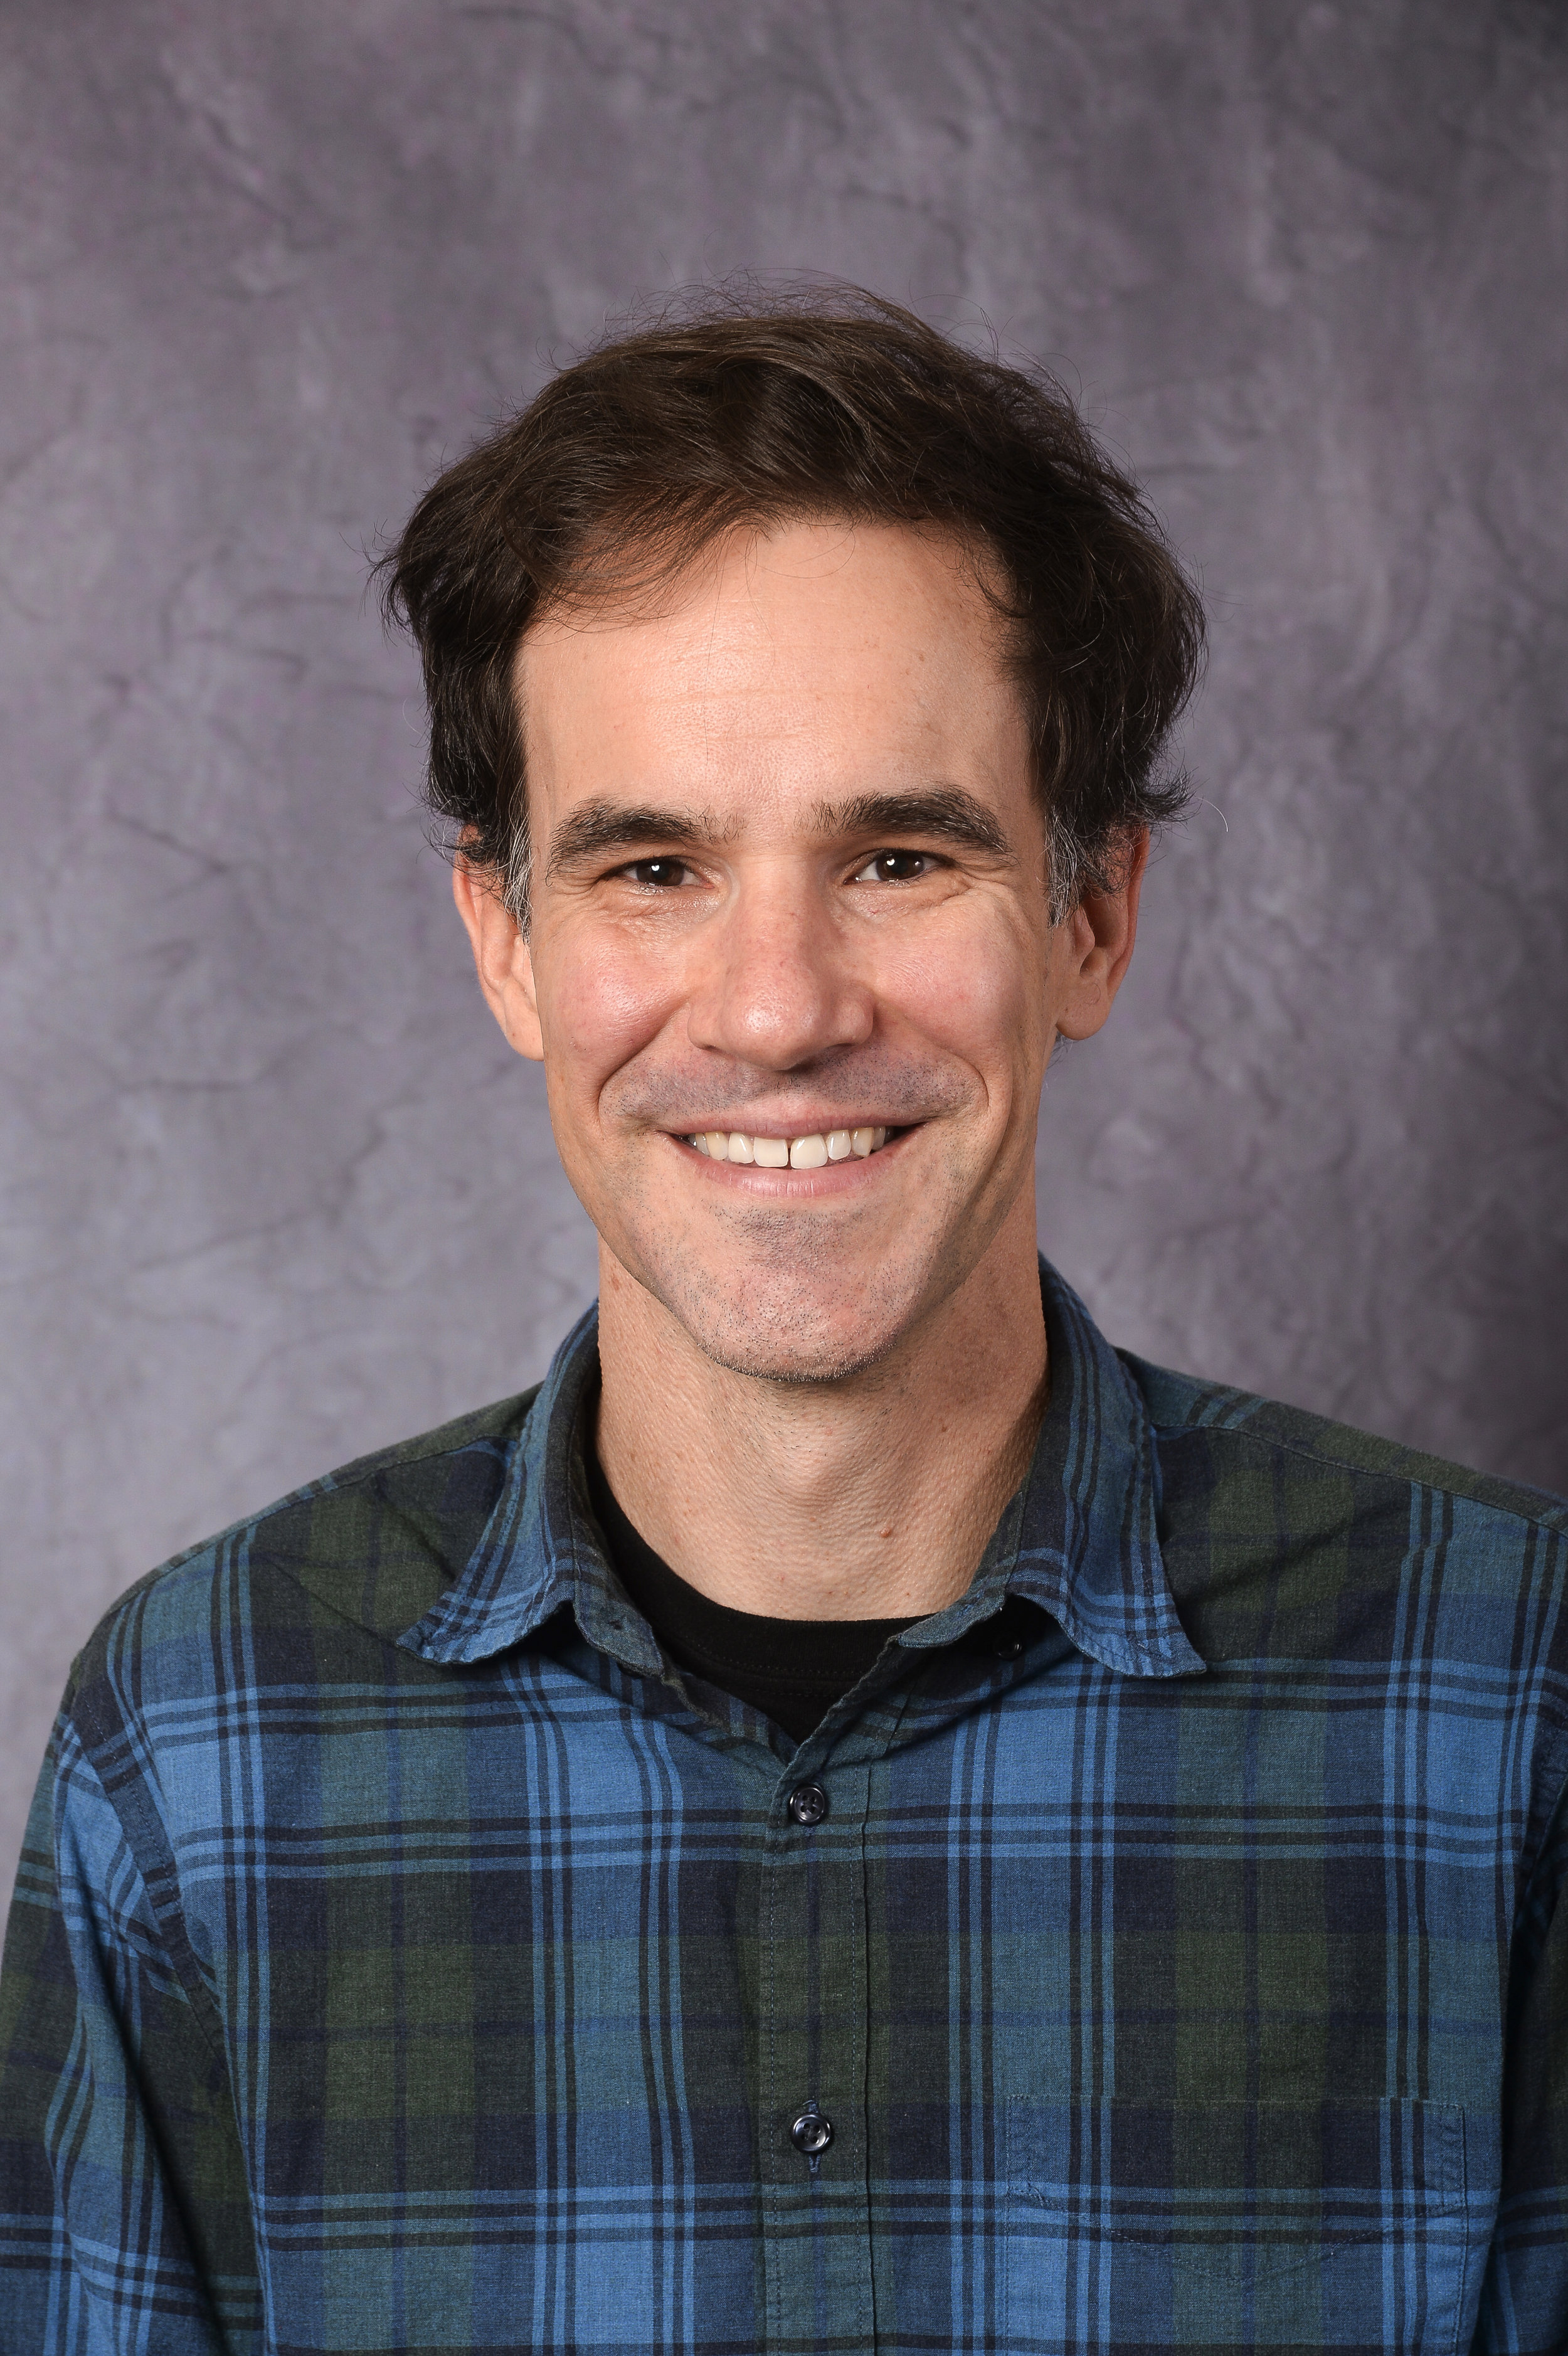 Michael Dowdy  is the author of  Urbilly,  winner of the 2017 Main Street Rag Poetry Book Award, and  Broken Souths: Latina/o Poetic Responses to Neoliberalism and Globalization, a study of Latina/o poetry . With the poet Claudia Rankine, he is coediting the forthcoming anthology,  American Poets in the 21st Century: Poetics of Social Engagemen t (Wesleyan University Press, 2018). Originally from Blacksburg, Virginia, he teaches at the University of South Carolina.